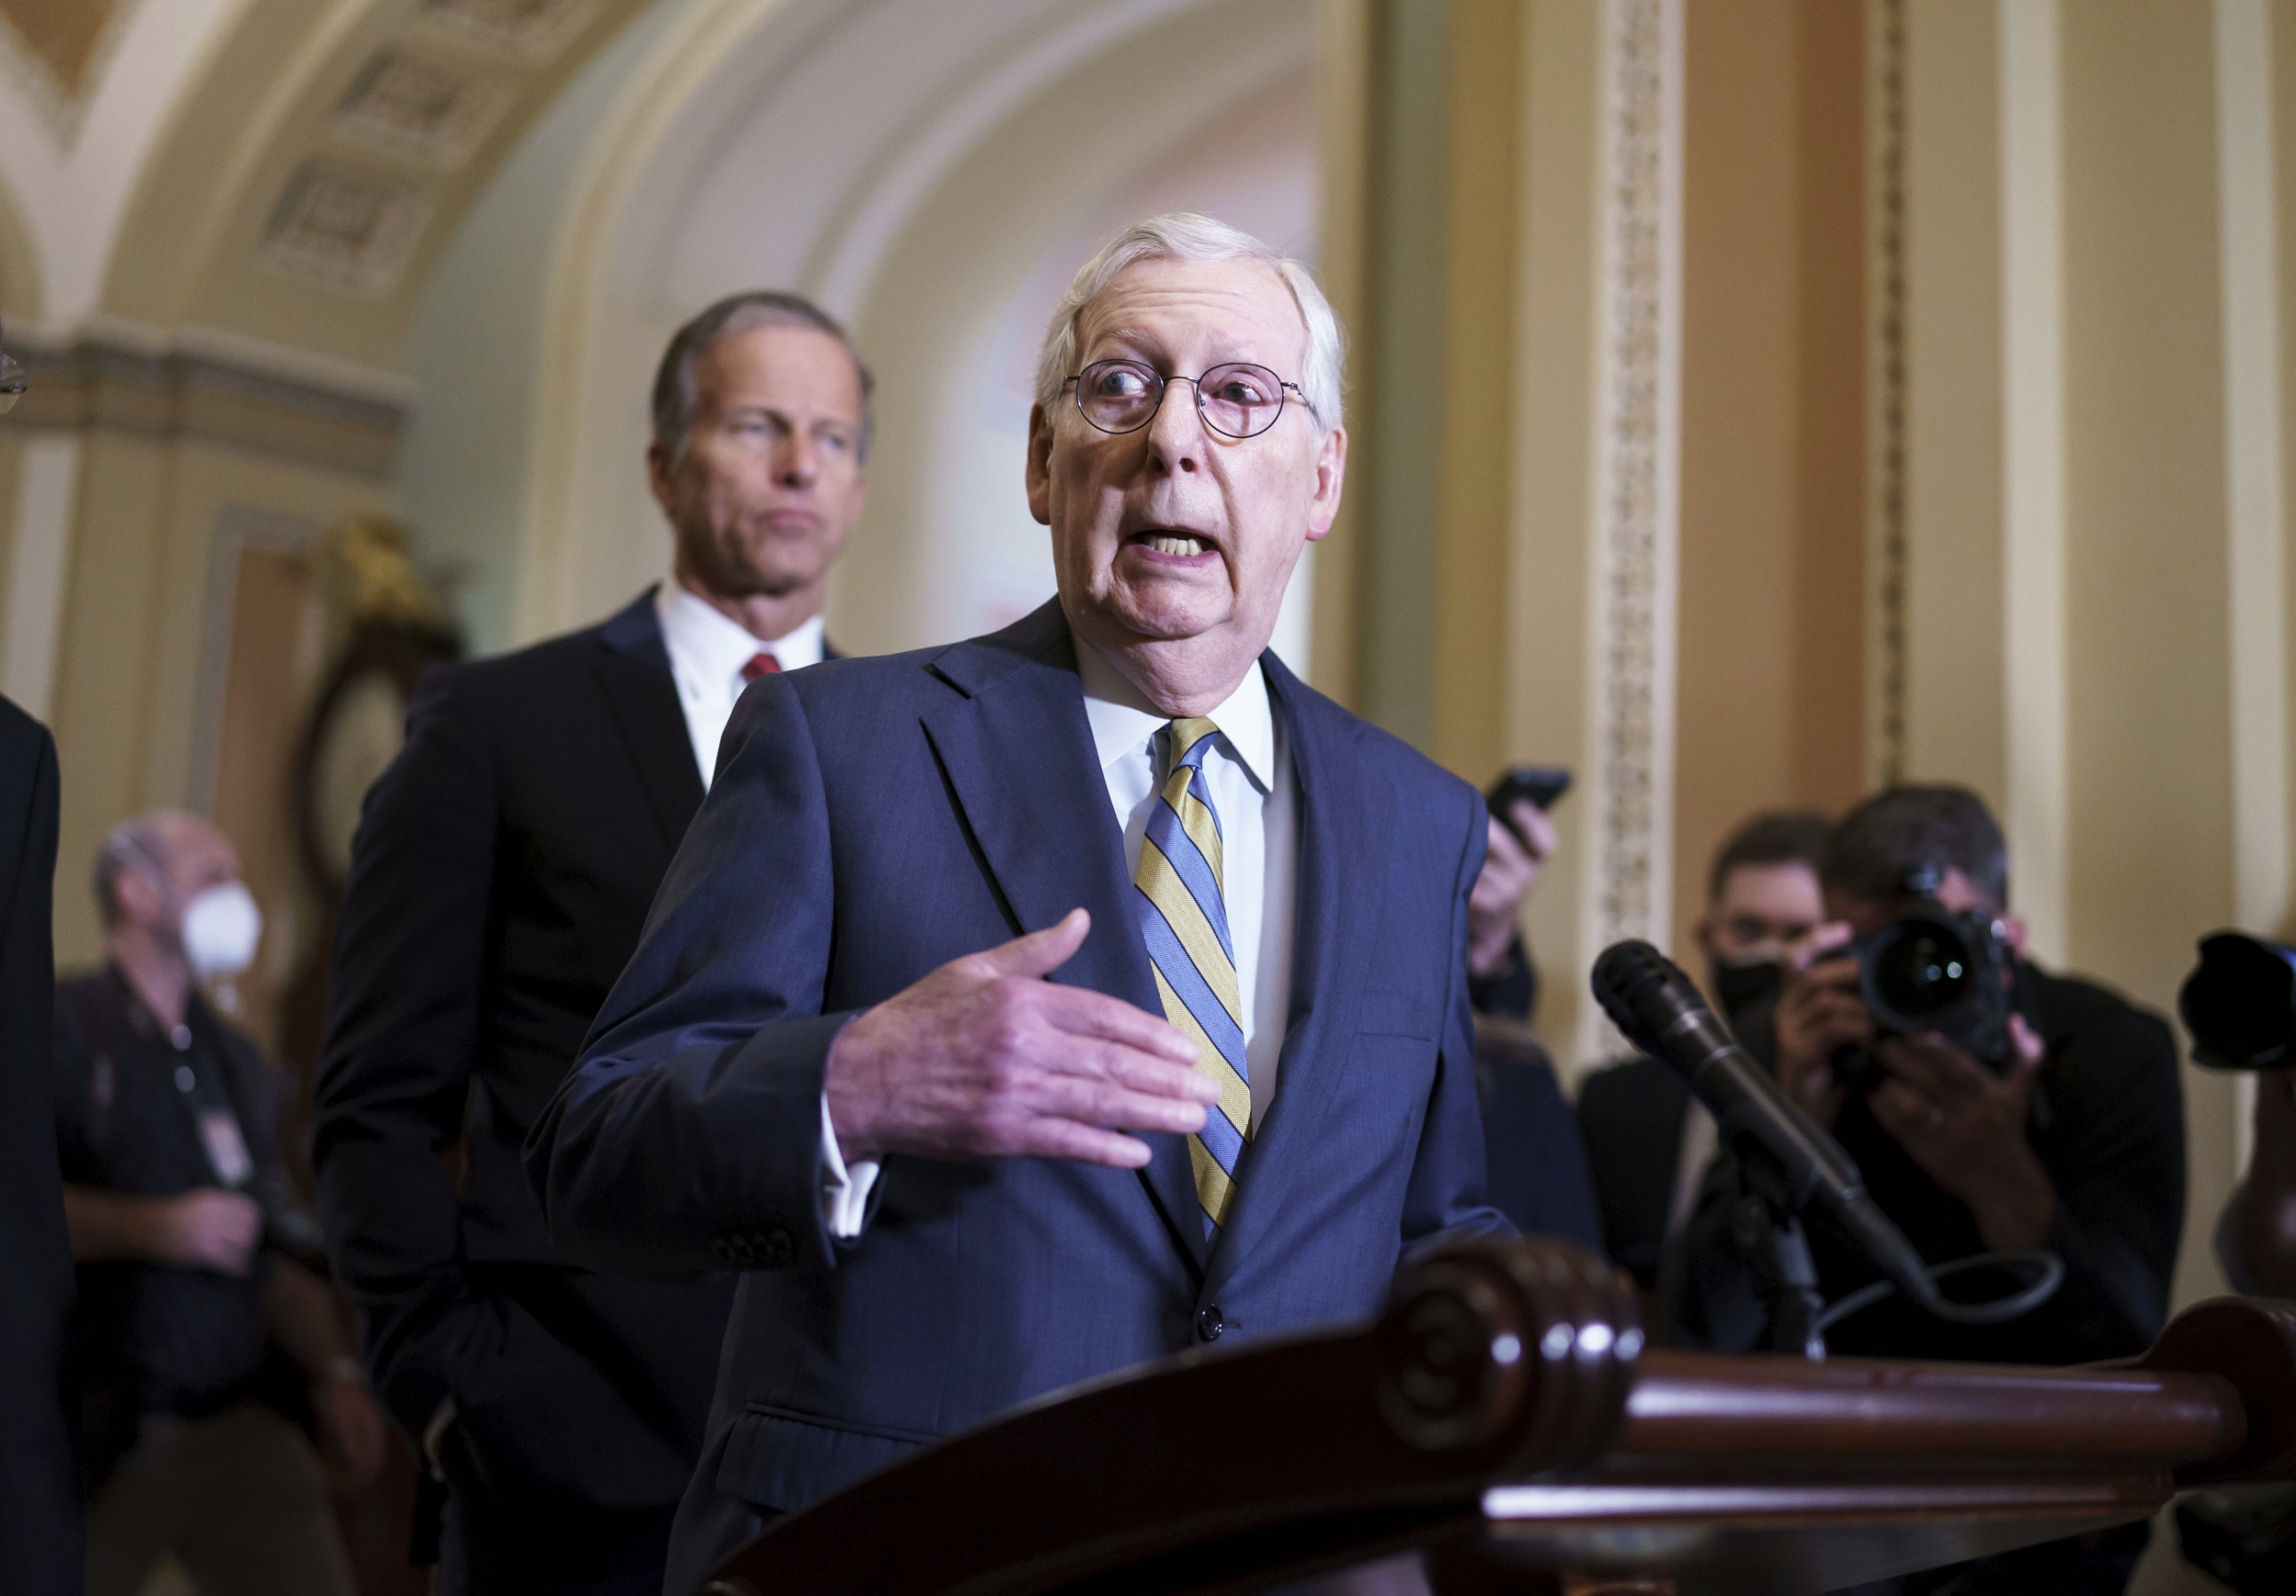 McConnell makes Covid vaccine push in new ad